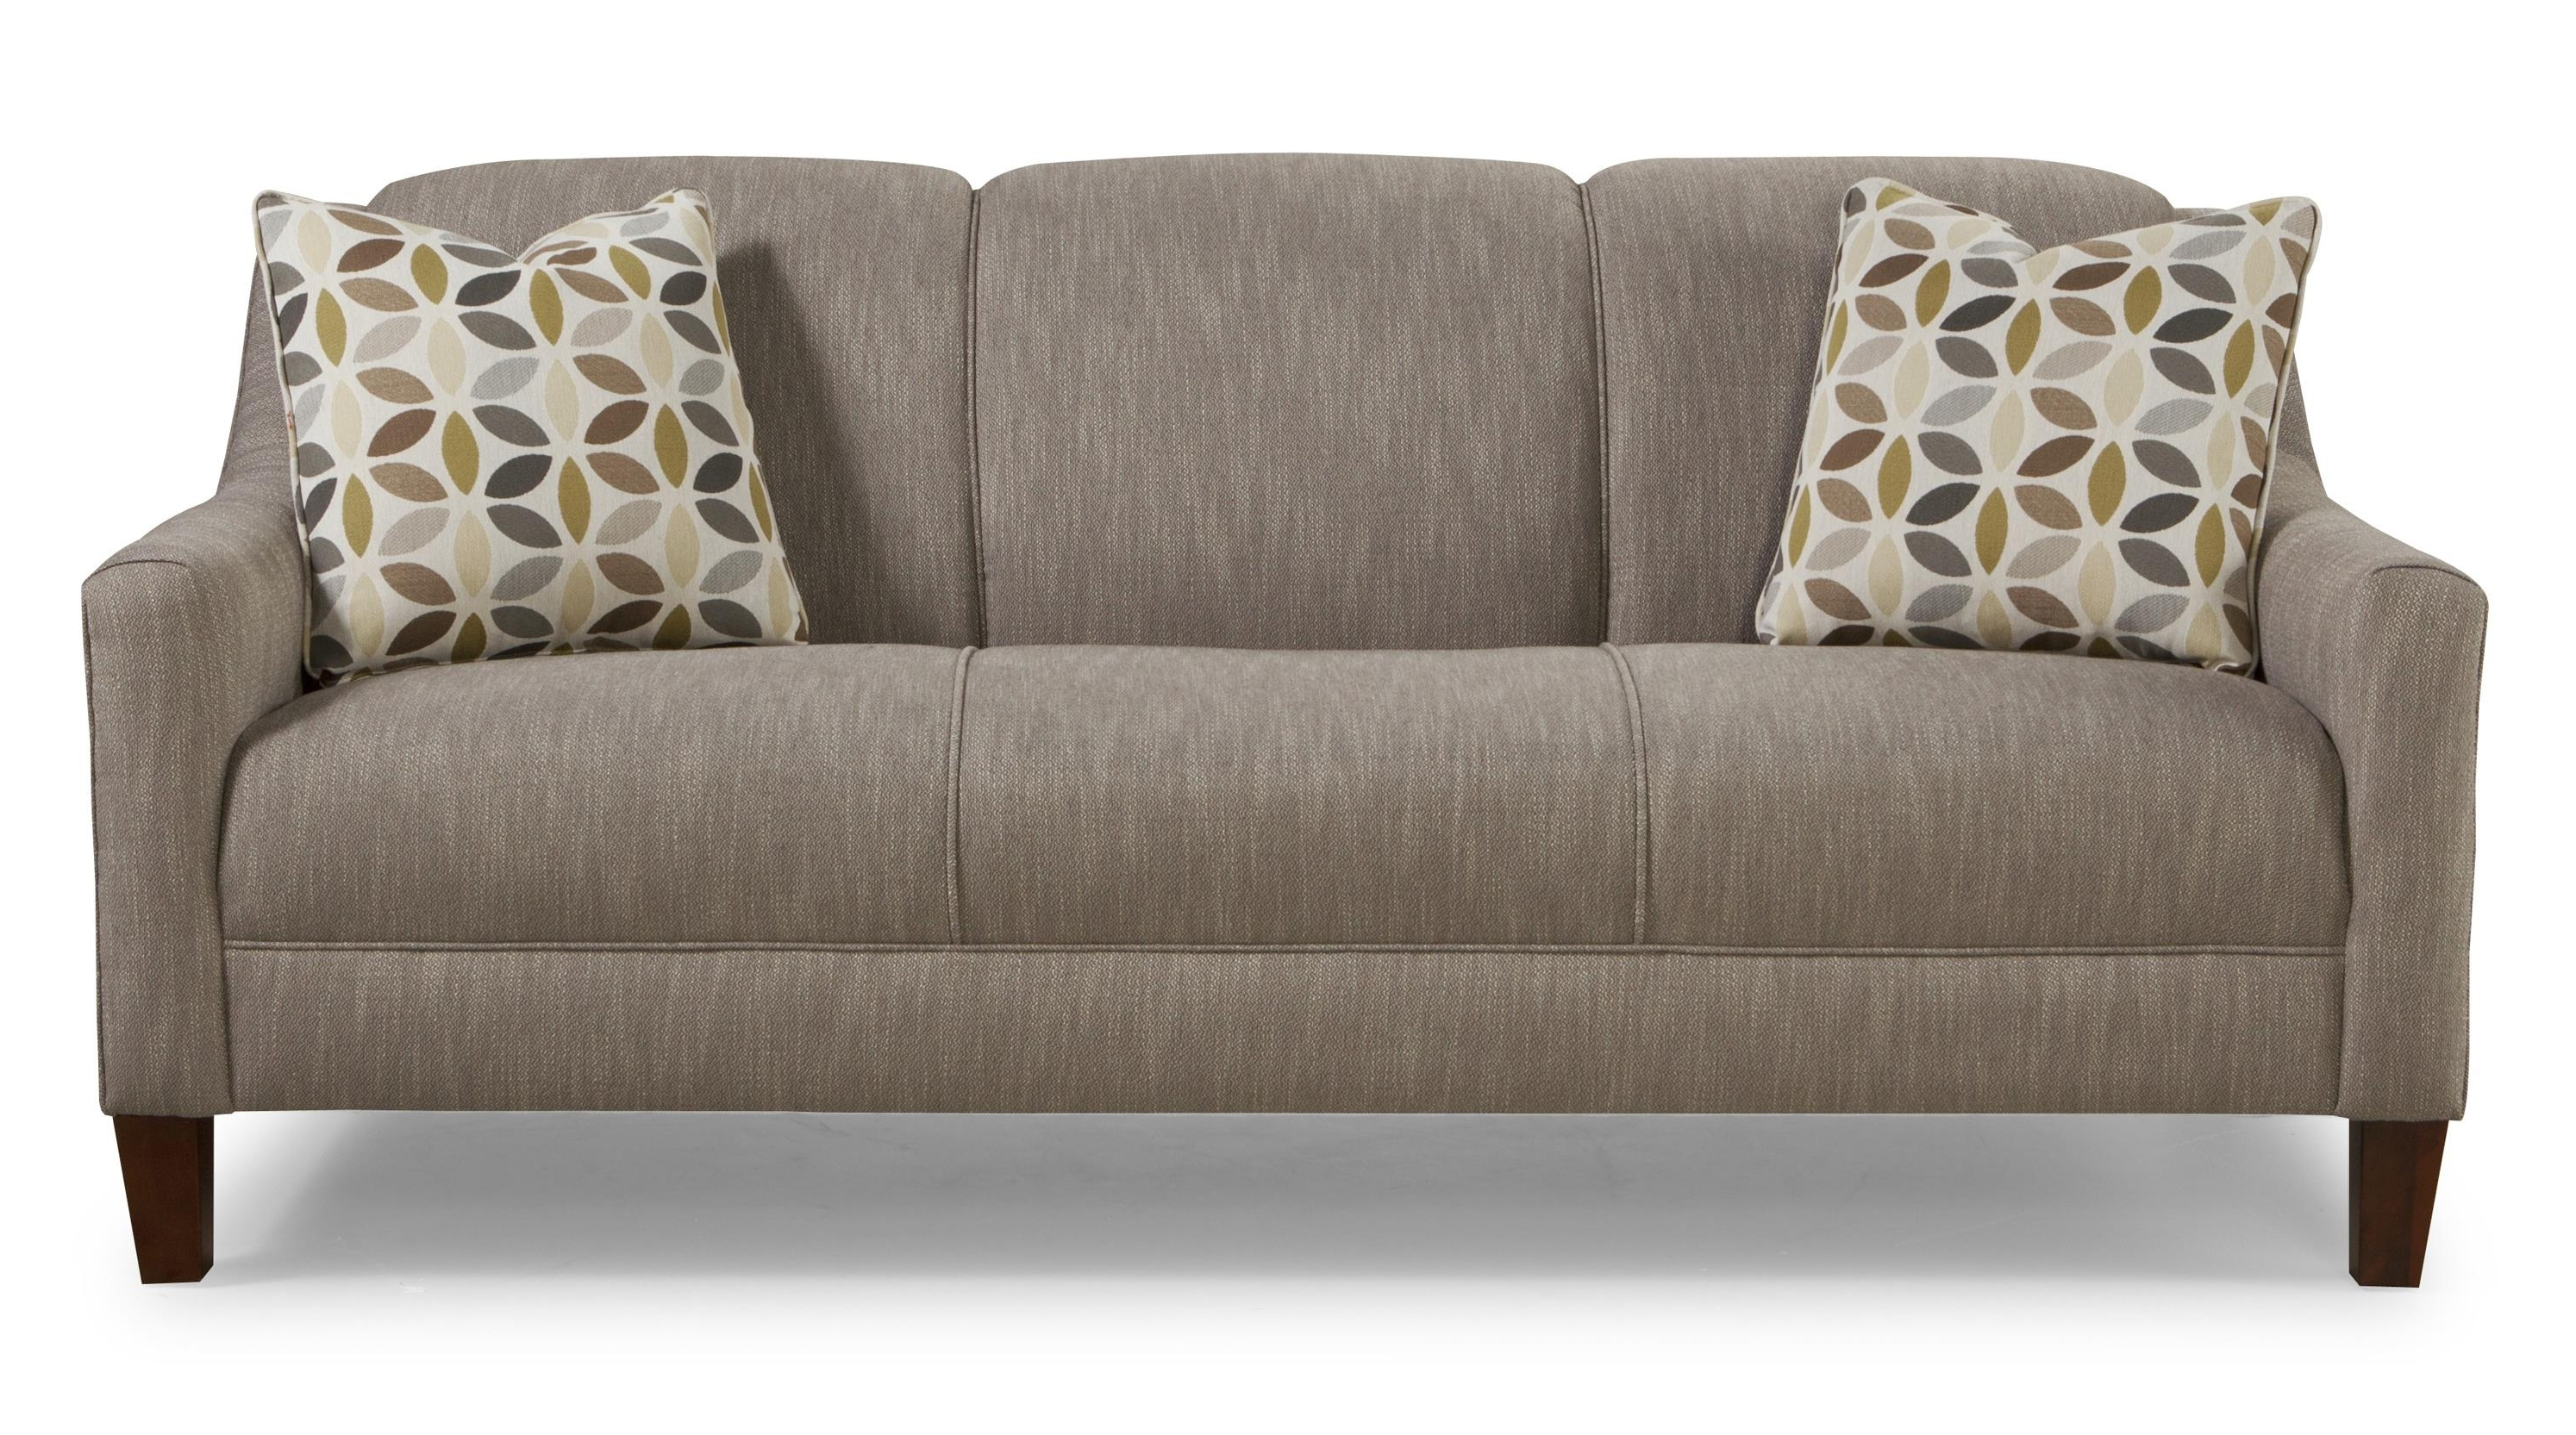 Sofa: Stylish Apartment Size Sofas Small Sectionals, Sofas Under Regarding Widely Used Apartment Sofas (View 13 of 15)